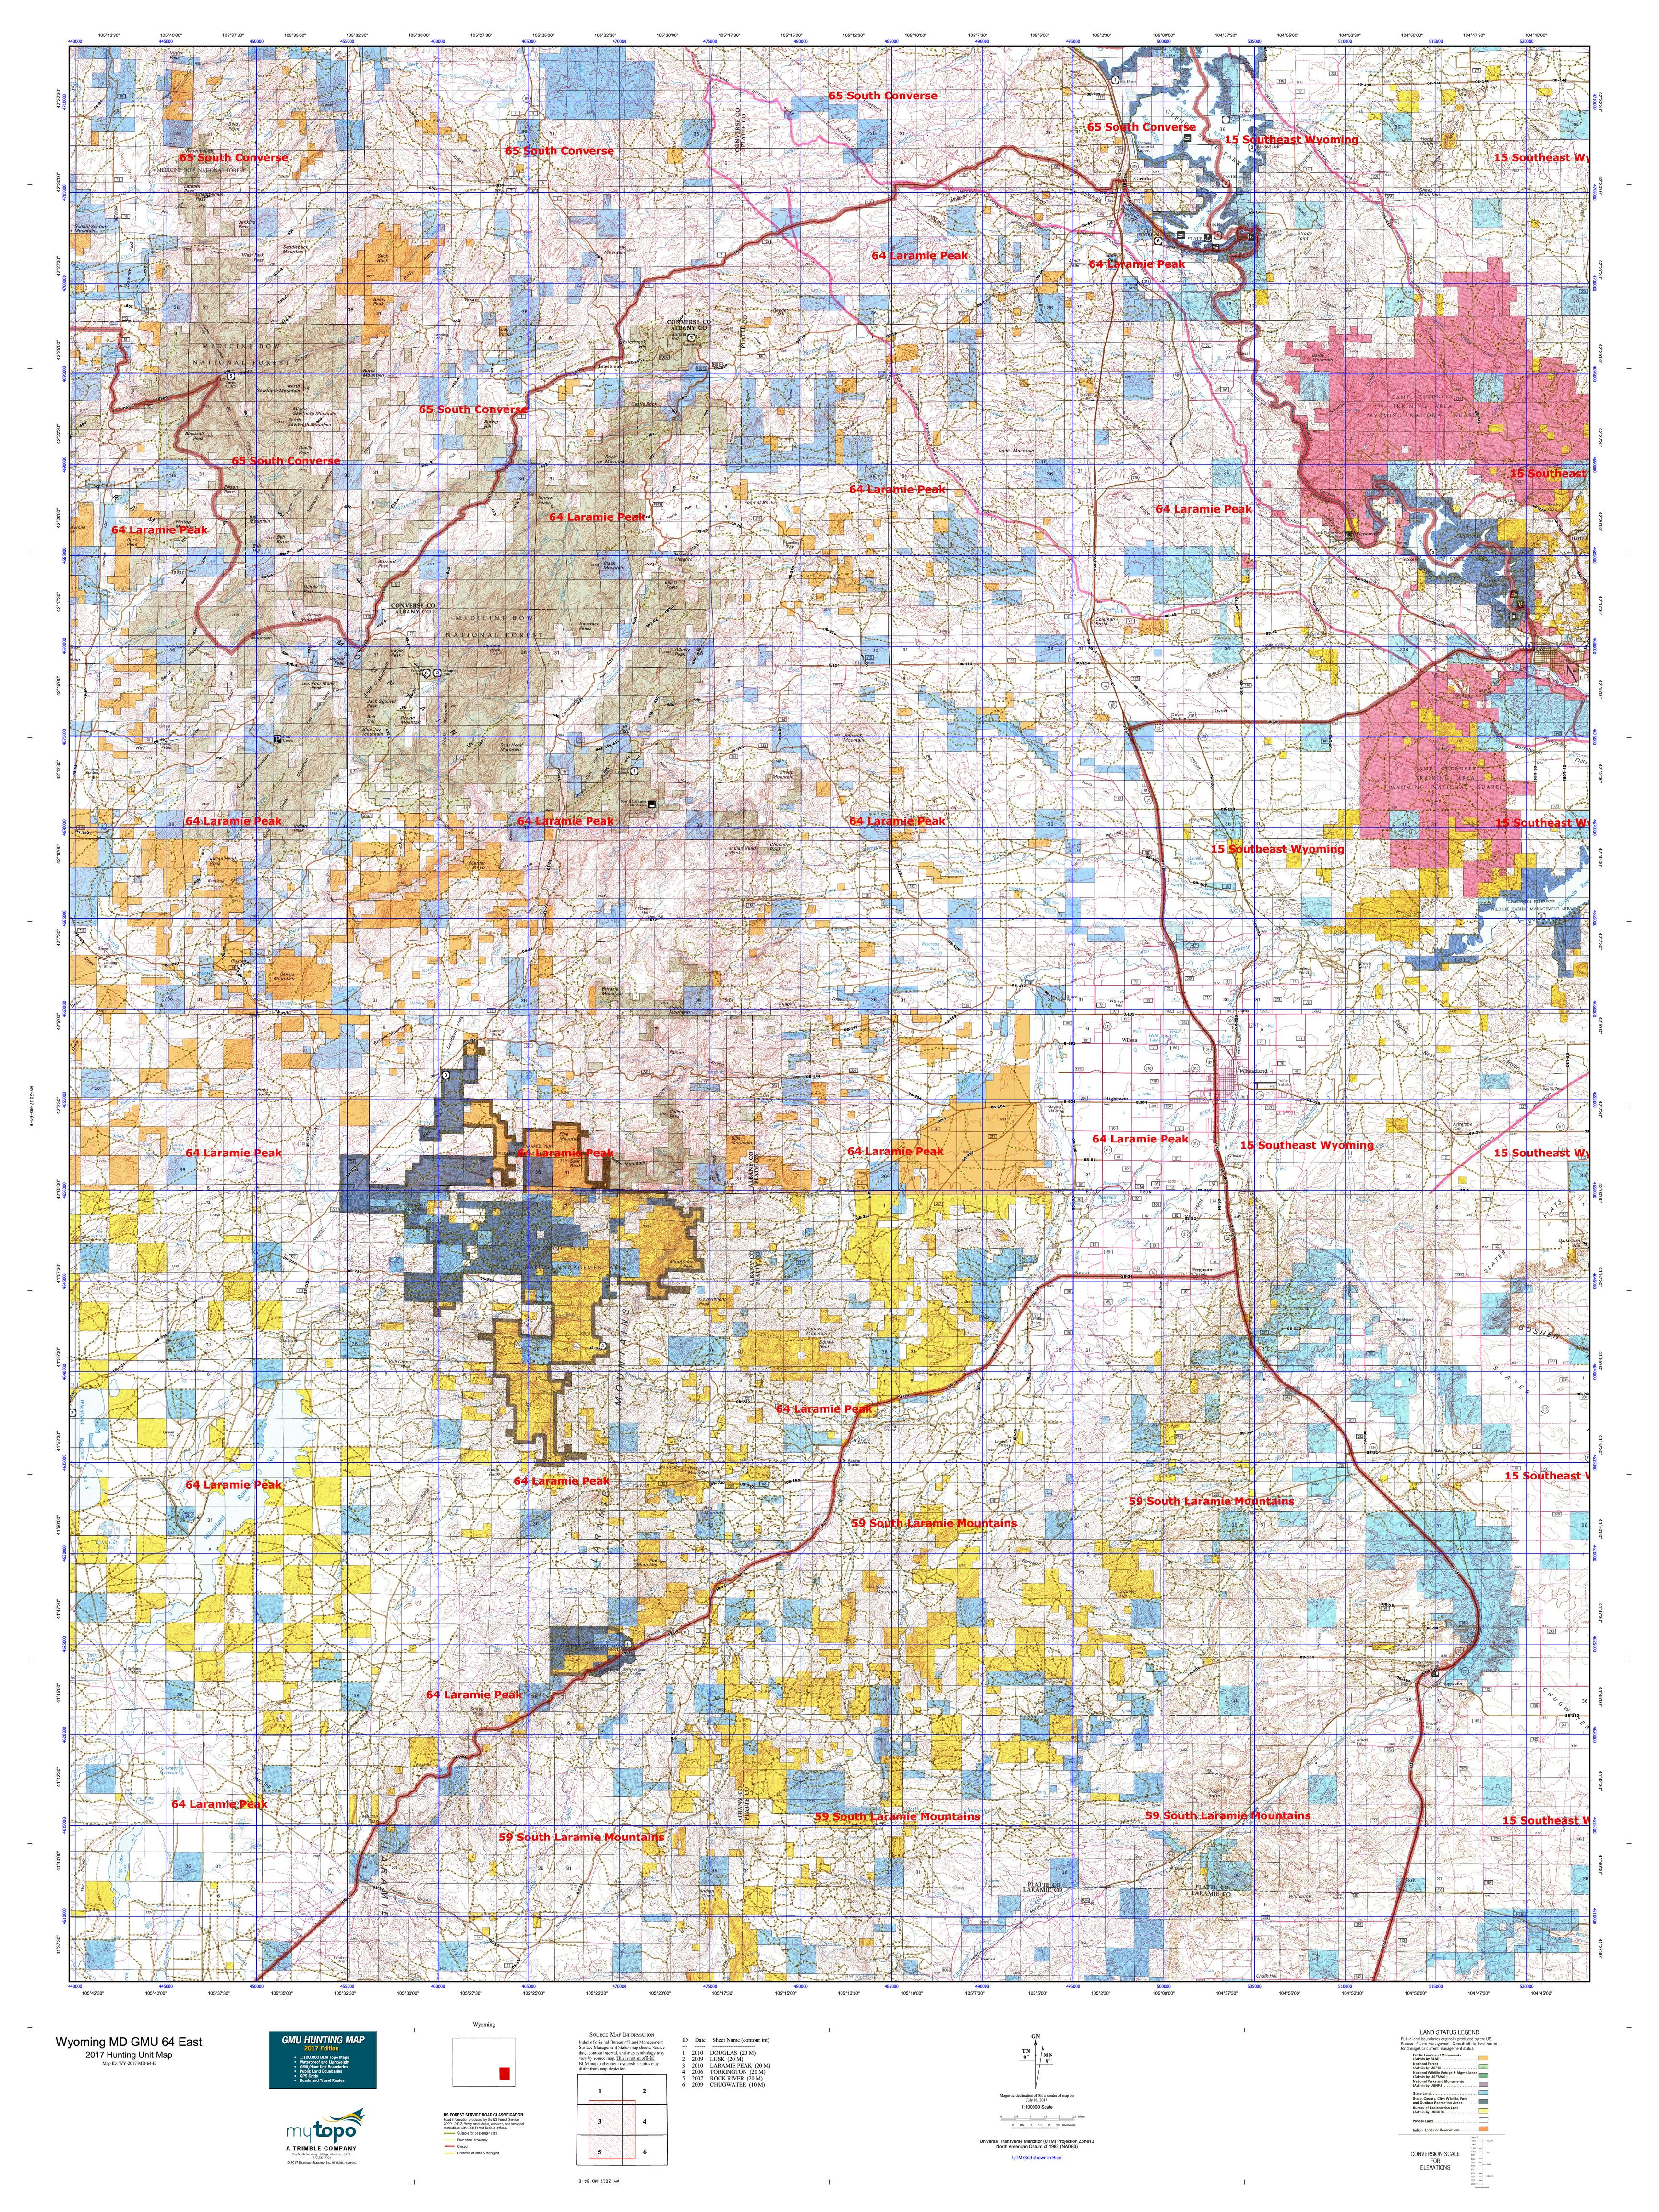 Wyoming MD GMU 64 East Map MyTopo